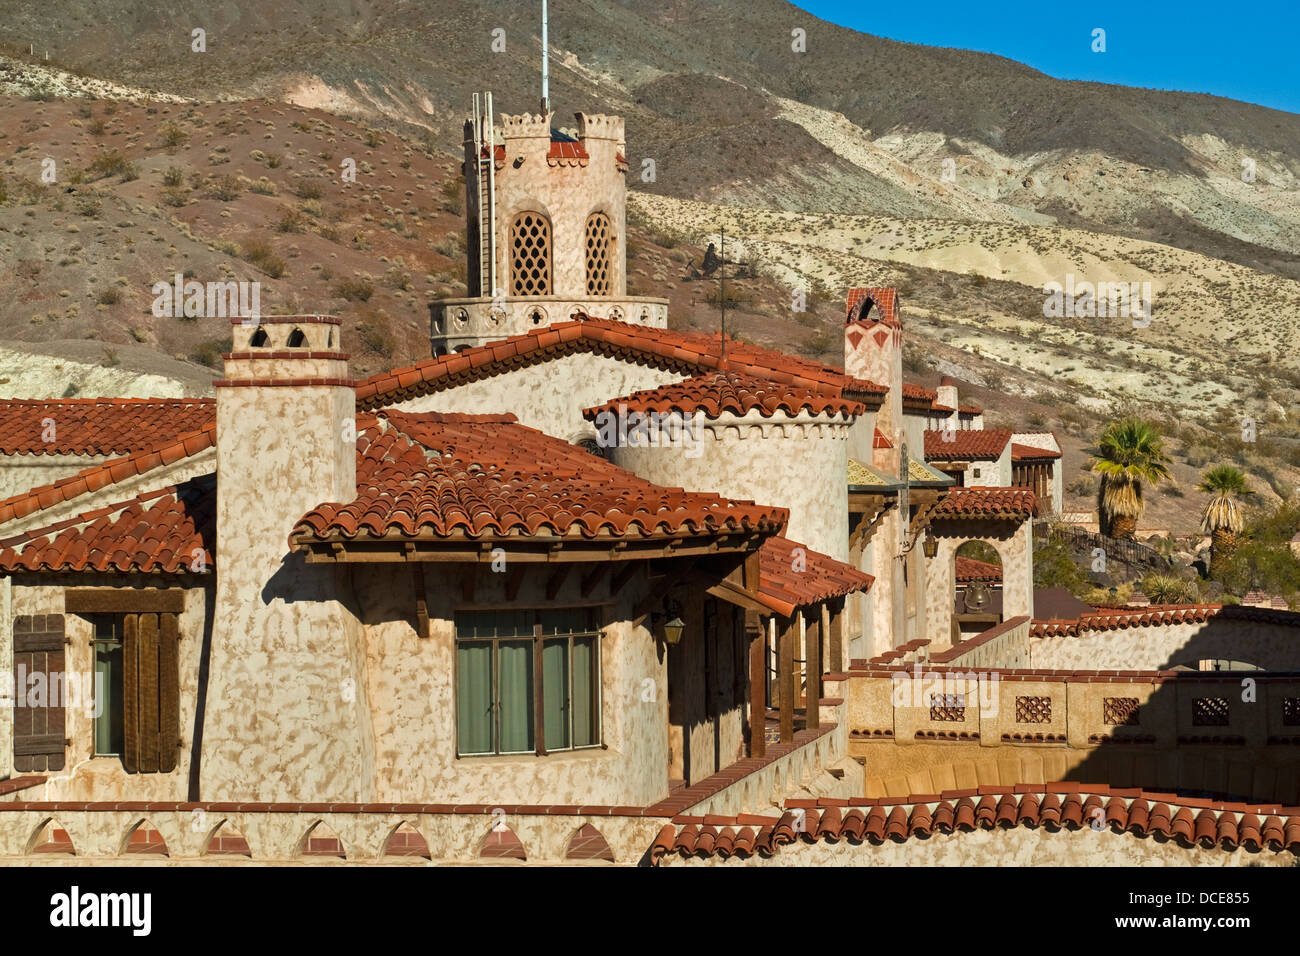 Scotty's Castle, Death Valley National Park, California - Stock Image